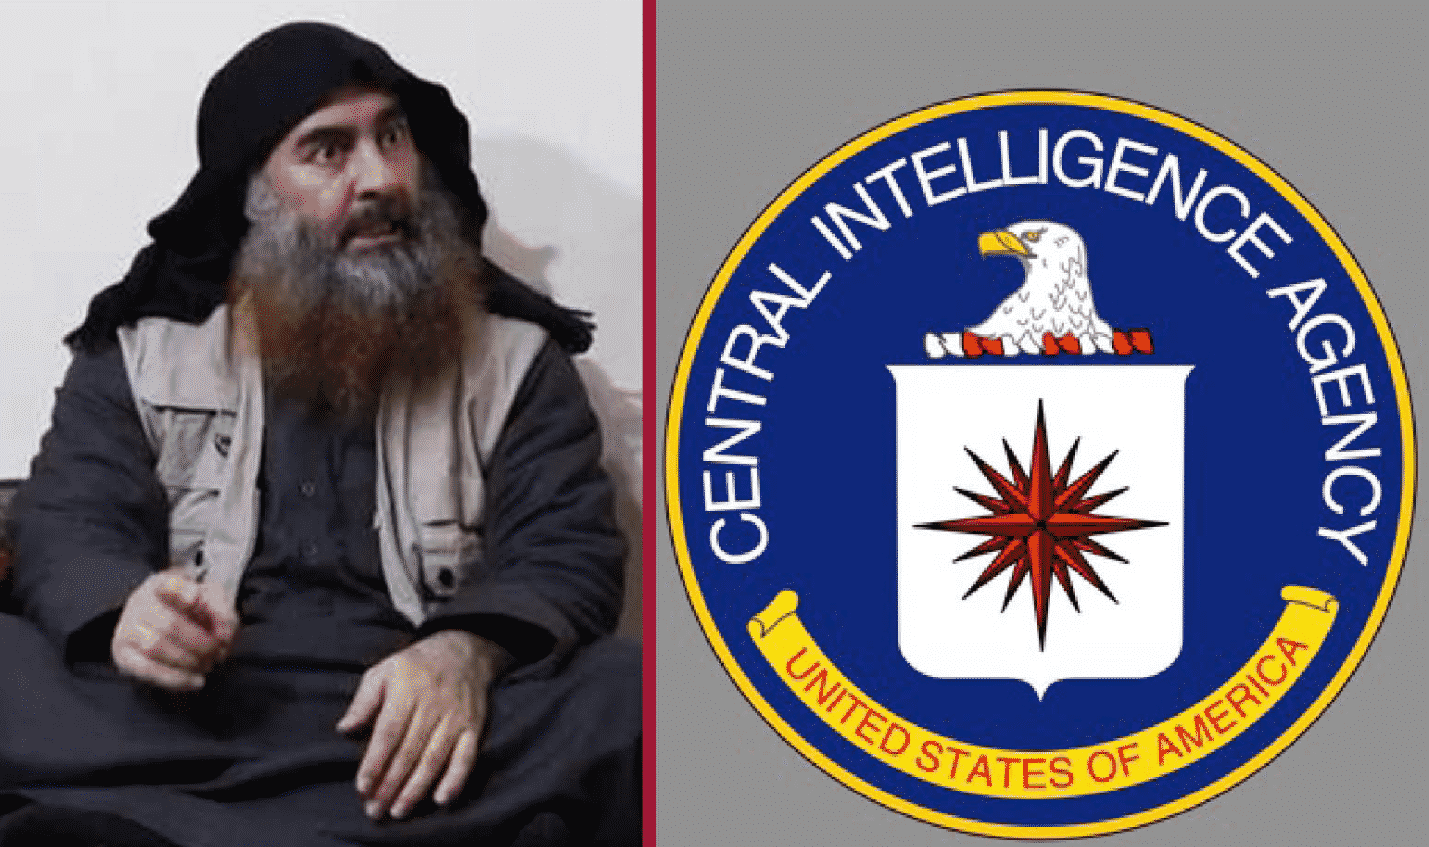 Al Baghdadi: His dual role as CIA operator and ISIS head